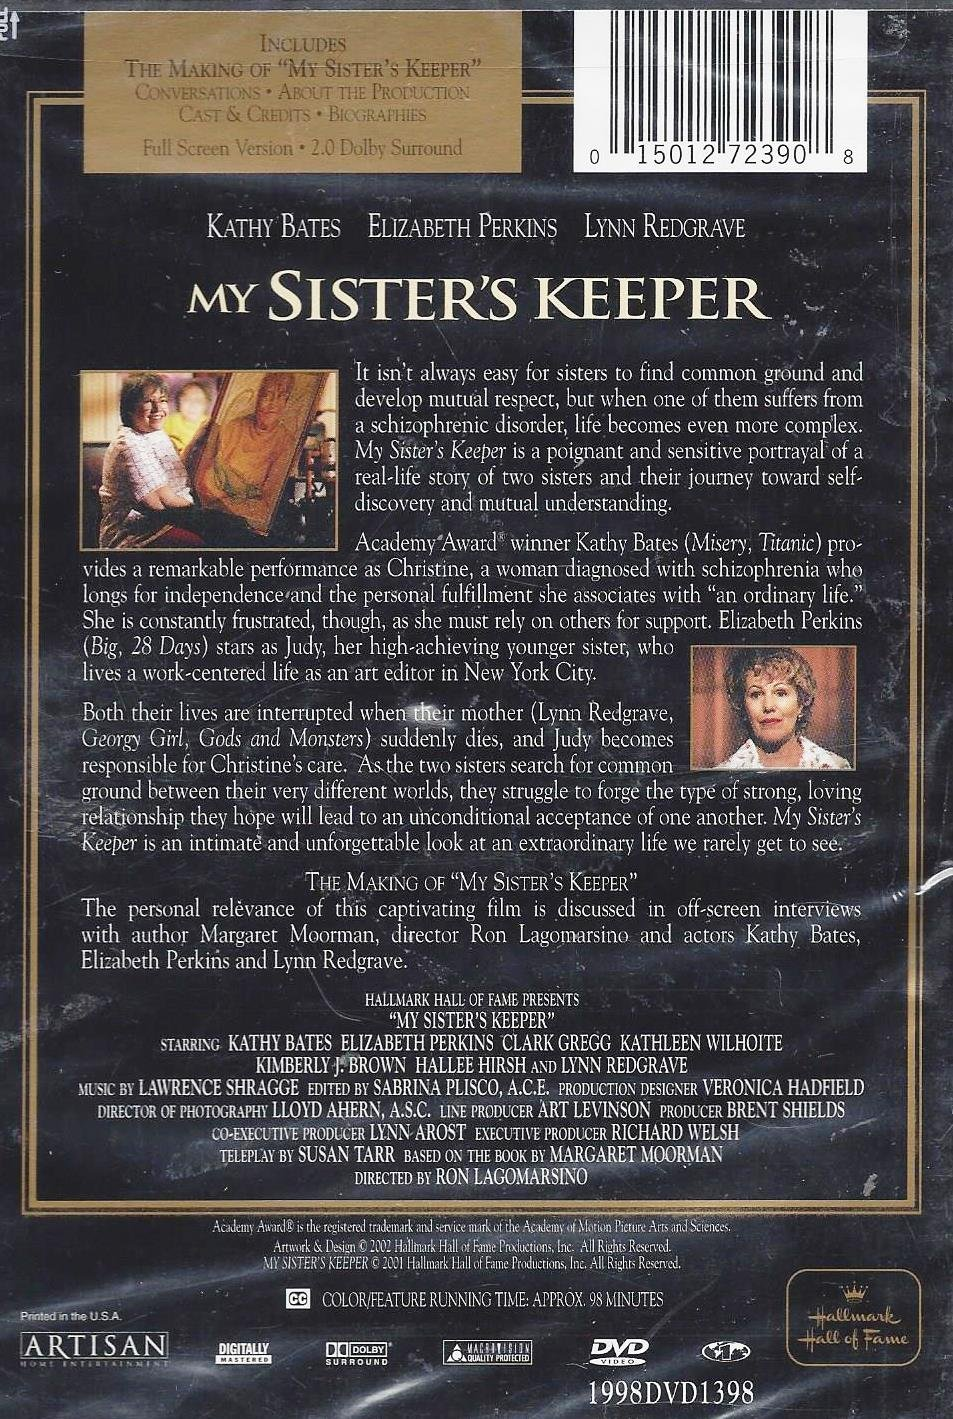 amazon com my sister s keeper hallmark hall of fame gold crown amazon com my sister s keeper hallmark hall of fame gold crown collector s edition 2002 movies tv